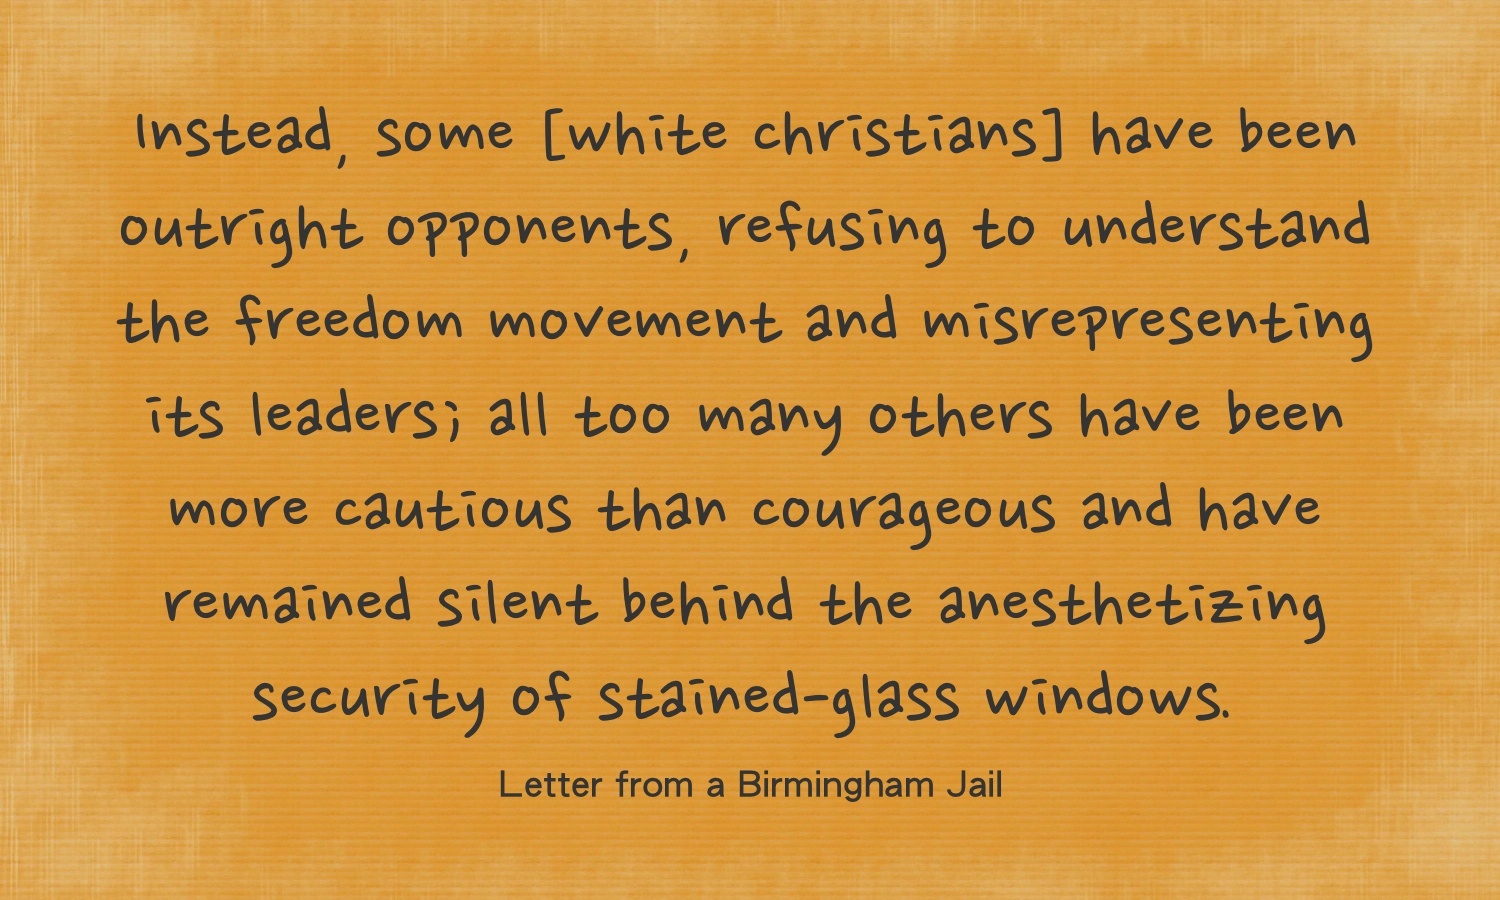 Quotes From Mlk Letter From Birmingham Jail: Why Black History Is For White Folks, Too: A Reflection On